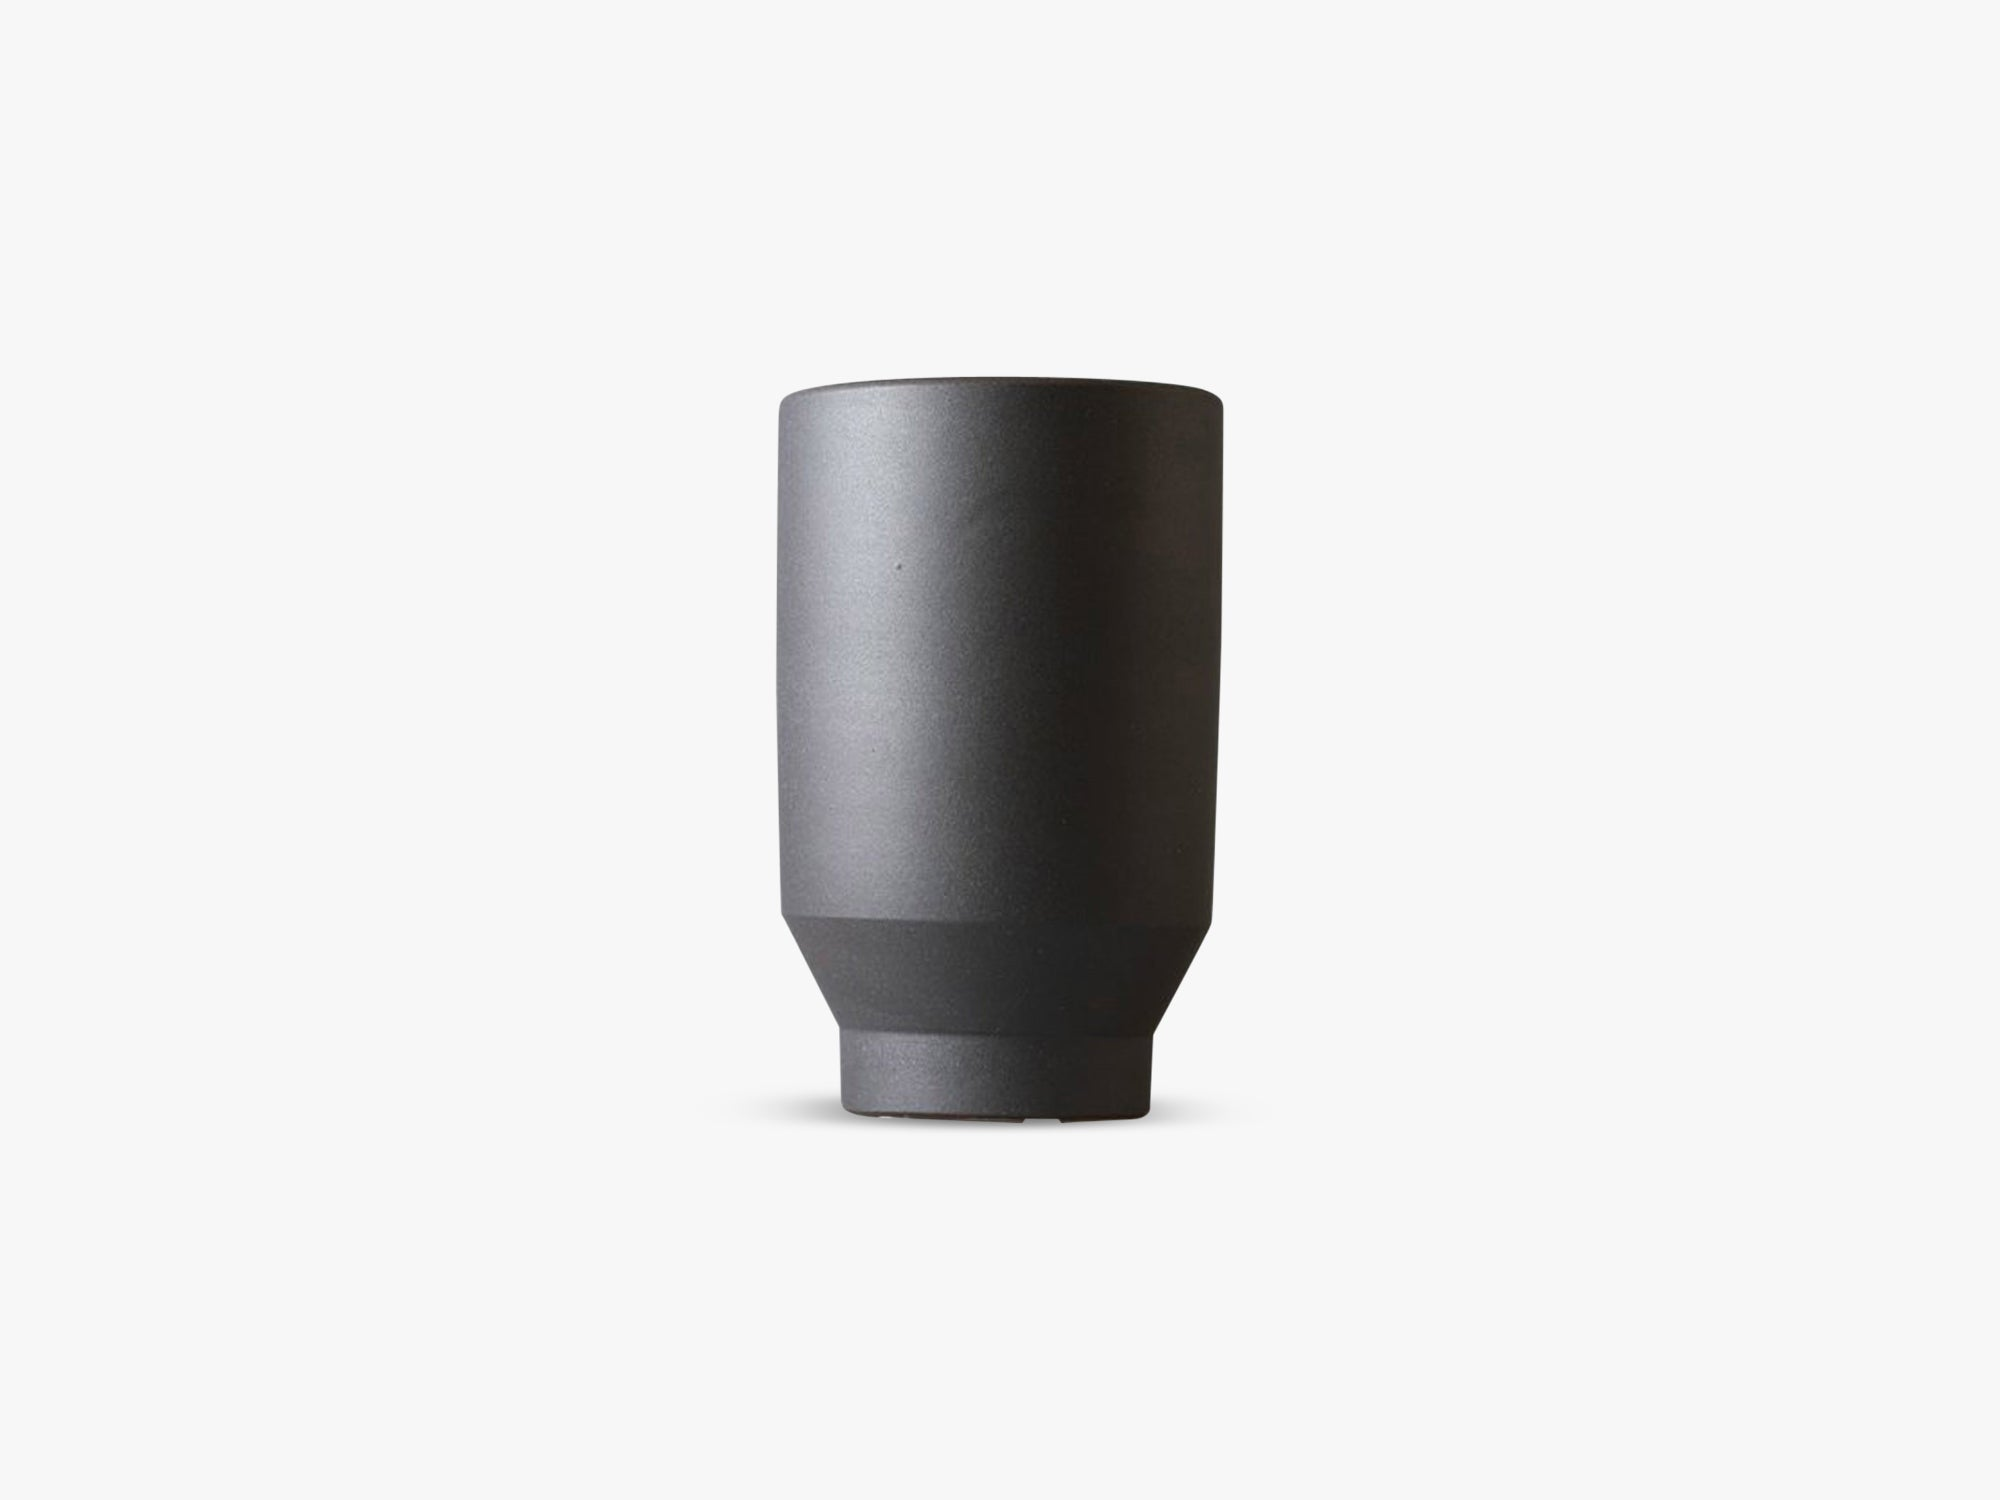 Boyhood Ceramic Pot - Cylinder, Matt Dark fra Specktrum